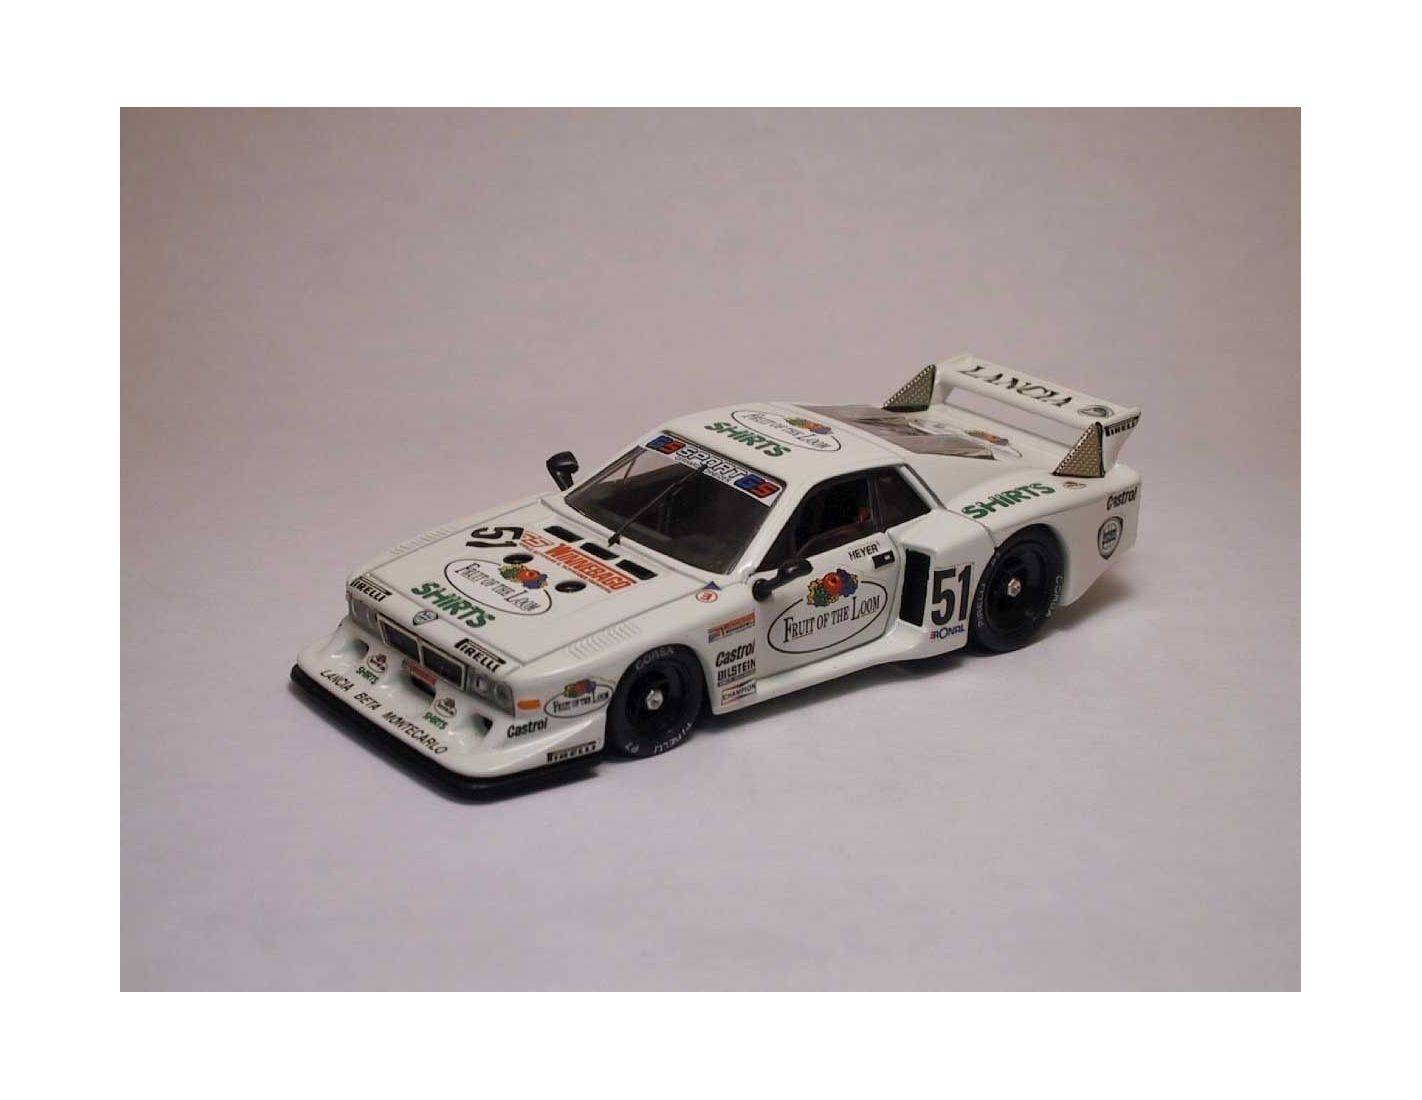 Best Model BT9197 LANCIA BETA MONTECARLO N.51 2nd ZOLDER 1980 H.HEIER 1:43 Modellino